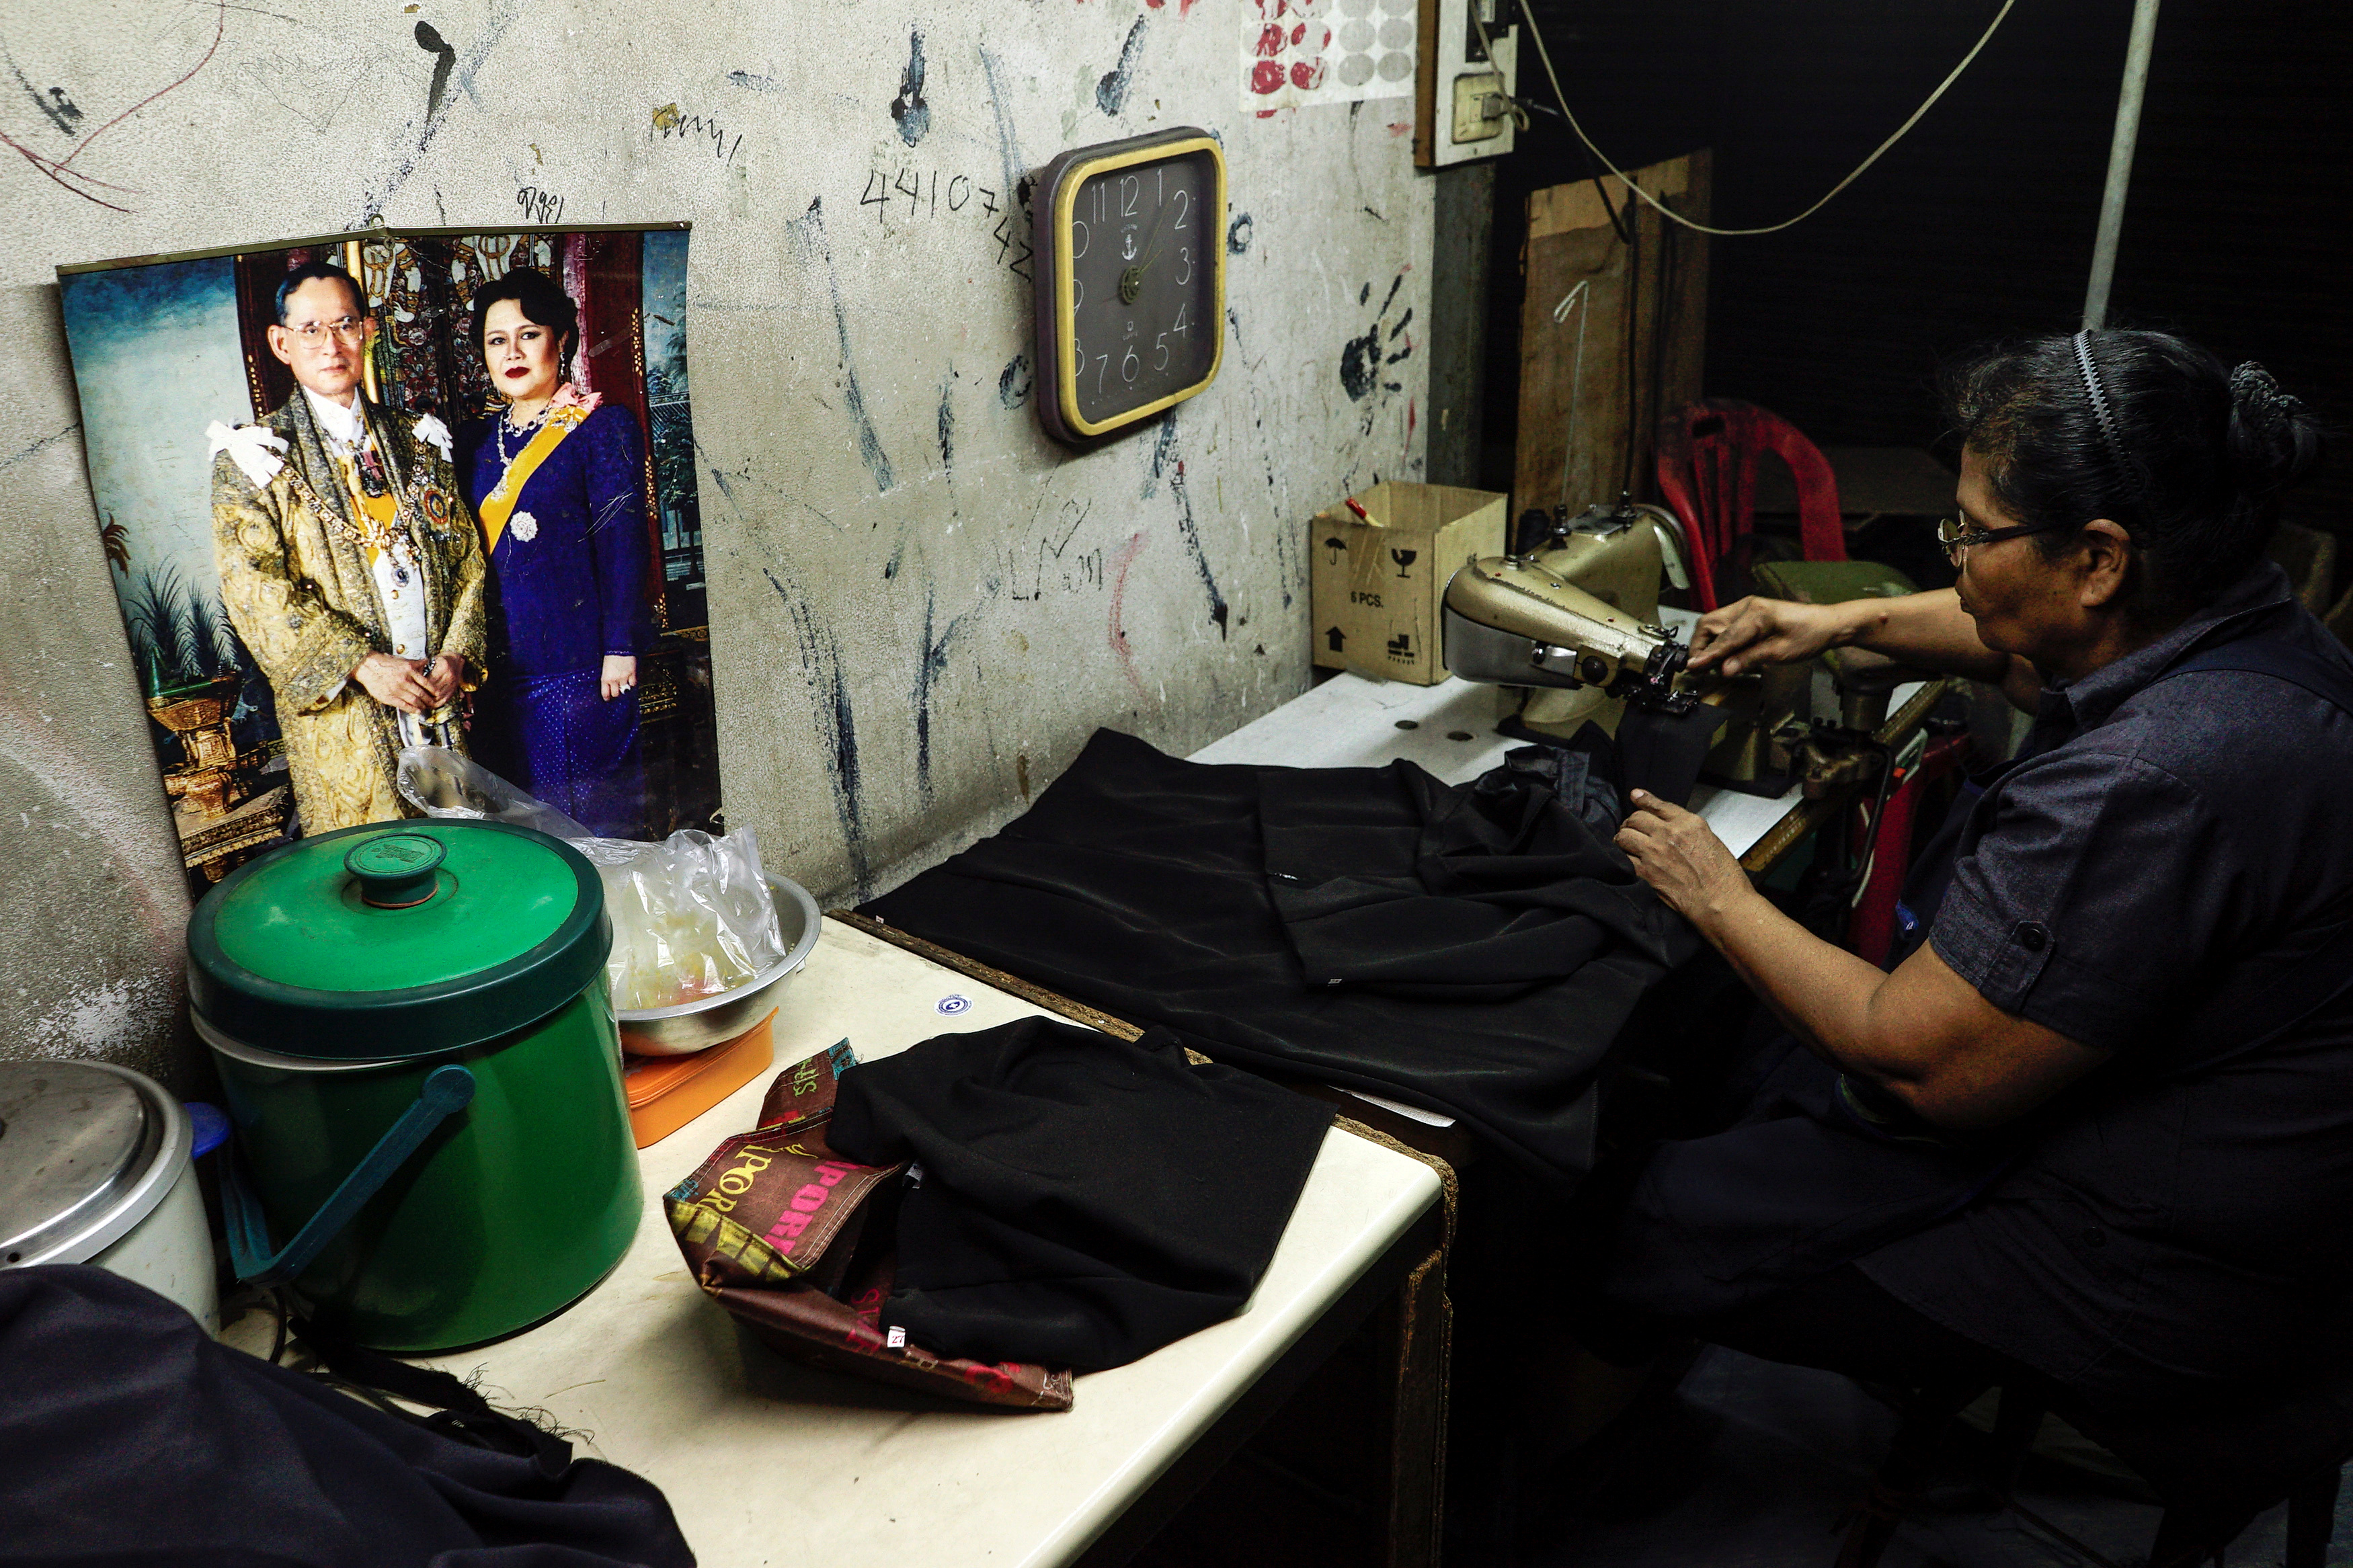 A tailor works on black clothes for customers mourning Thailand's late King Bhumibol Adulyadej at a market in Bangkok, Thailand, October 17, 2016. REUTERS/Athit Perawongmetha - RTX2P4Y0